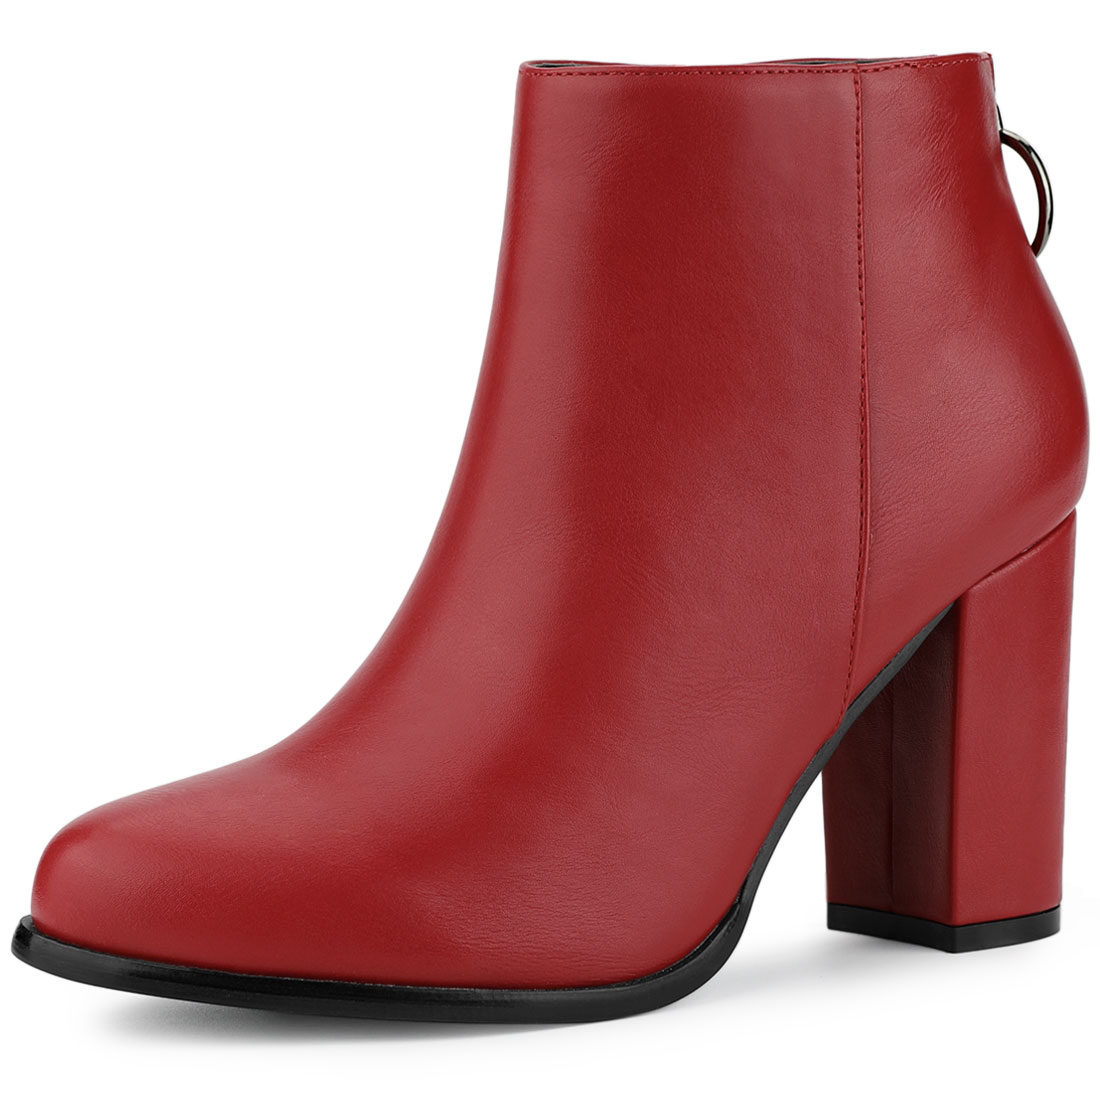 Allegra K Women's Round Toe Back Zip Block Heel Ankle Booties Red US 7.5